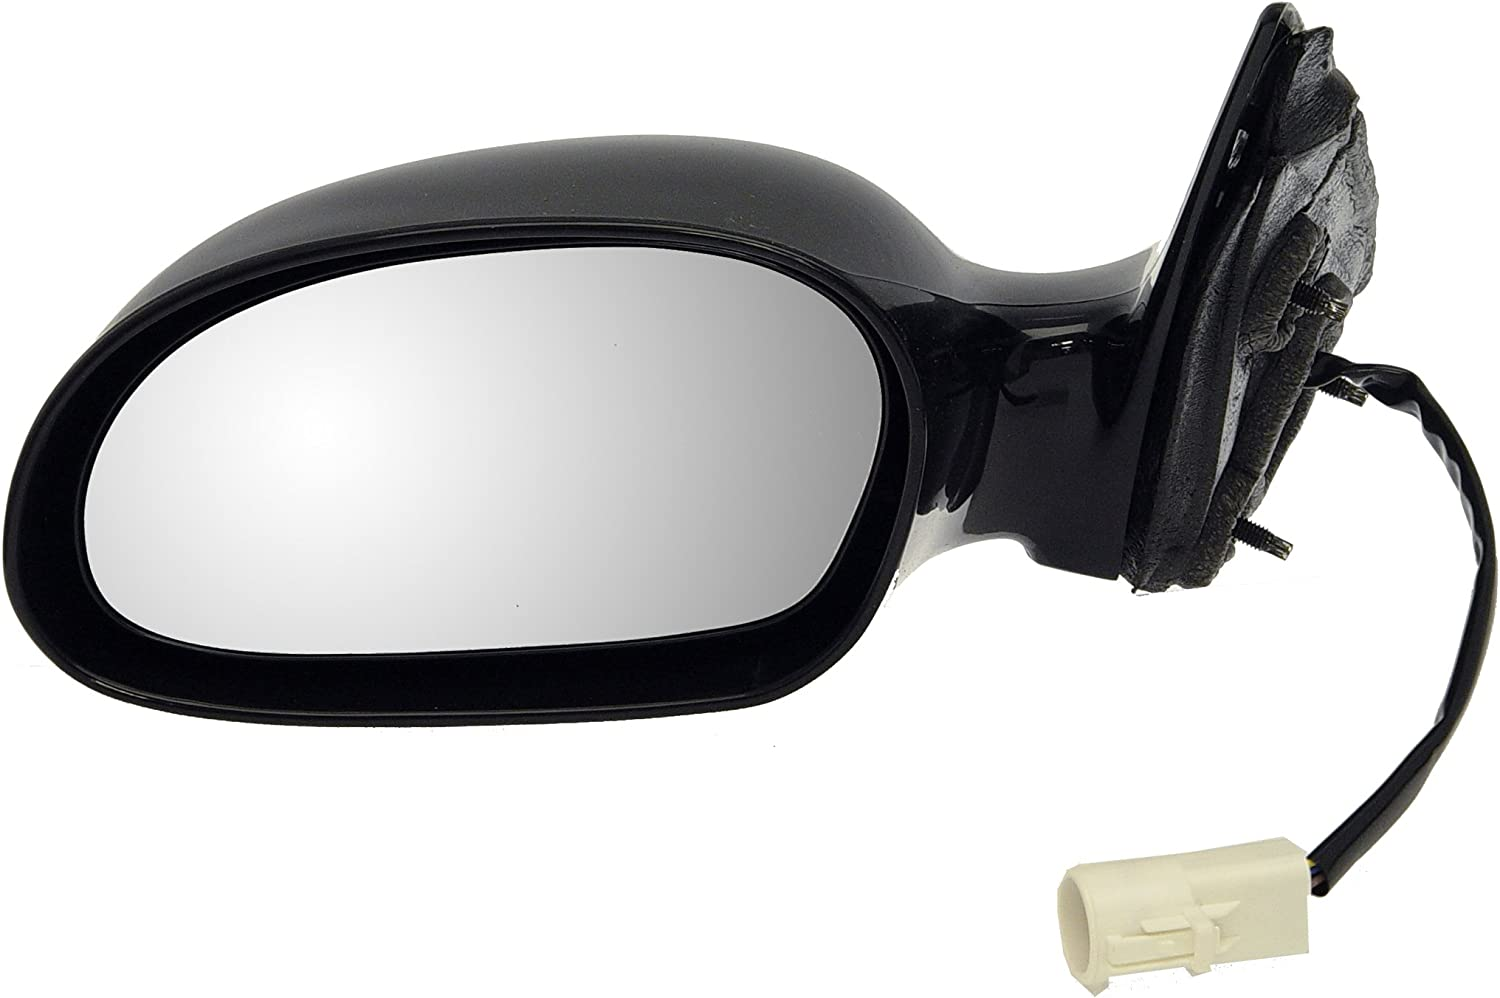 NEW RIGHT POWER MIRROR NON FOLDING FITS 1996-1999 FORD TAURUS FO1321122